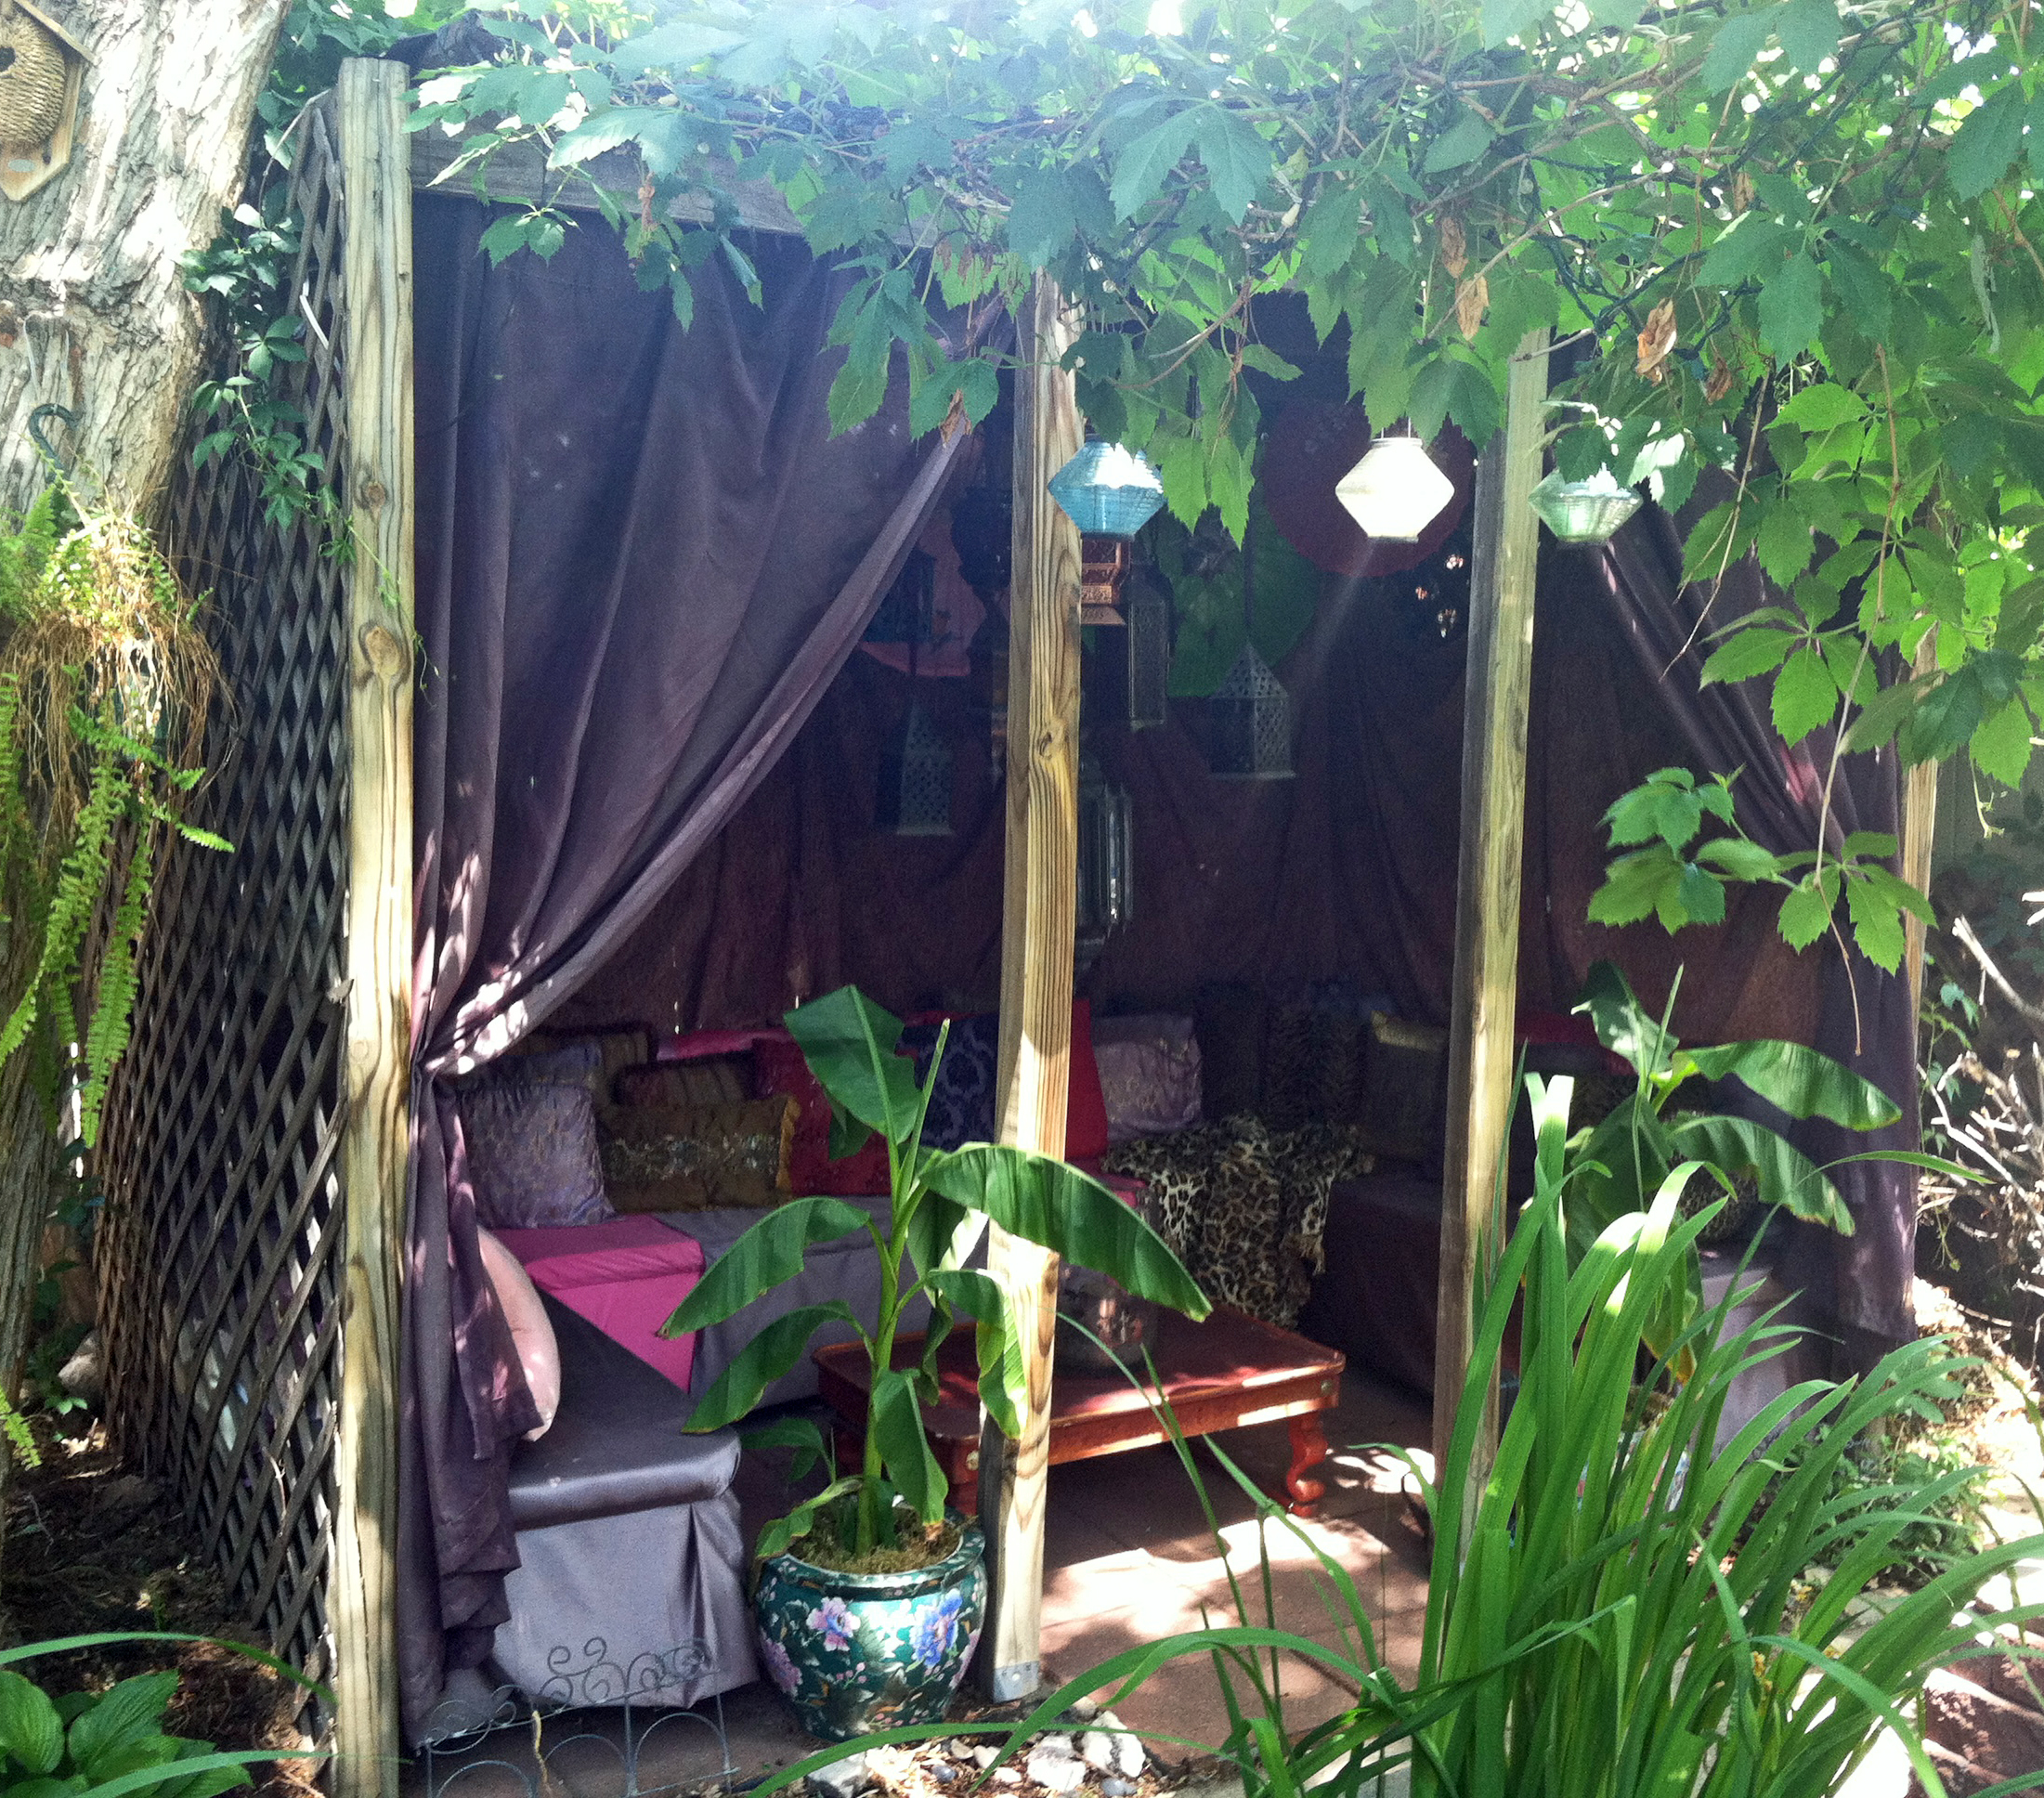 diy exotic asian moroccan gazebo restyle with thrift store finds